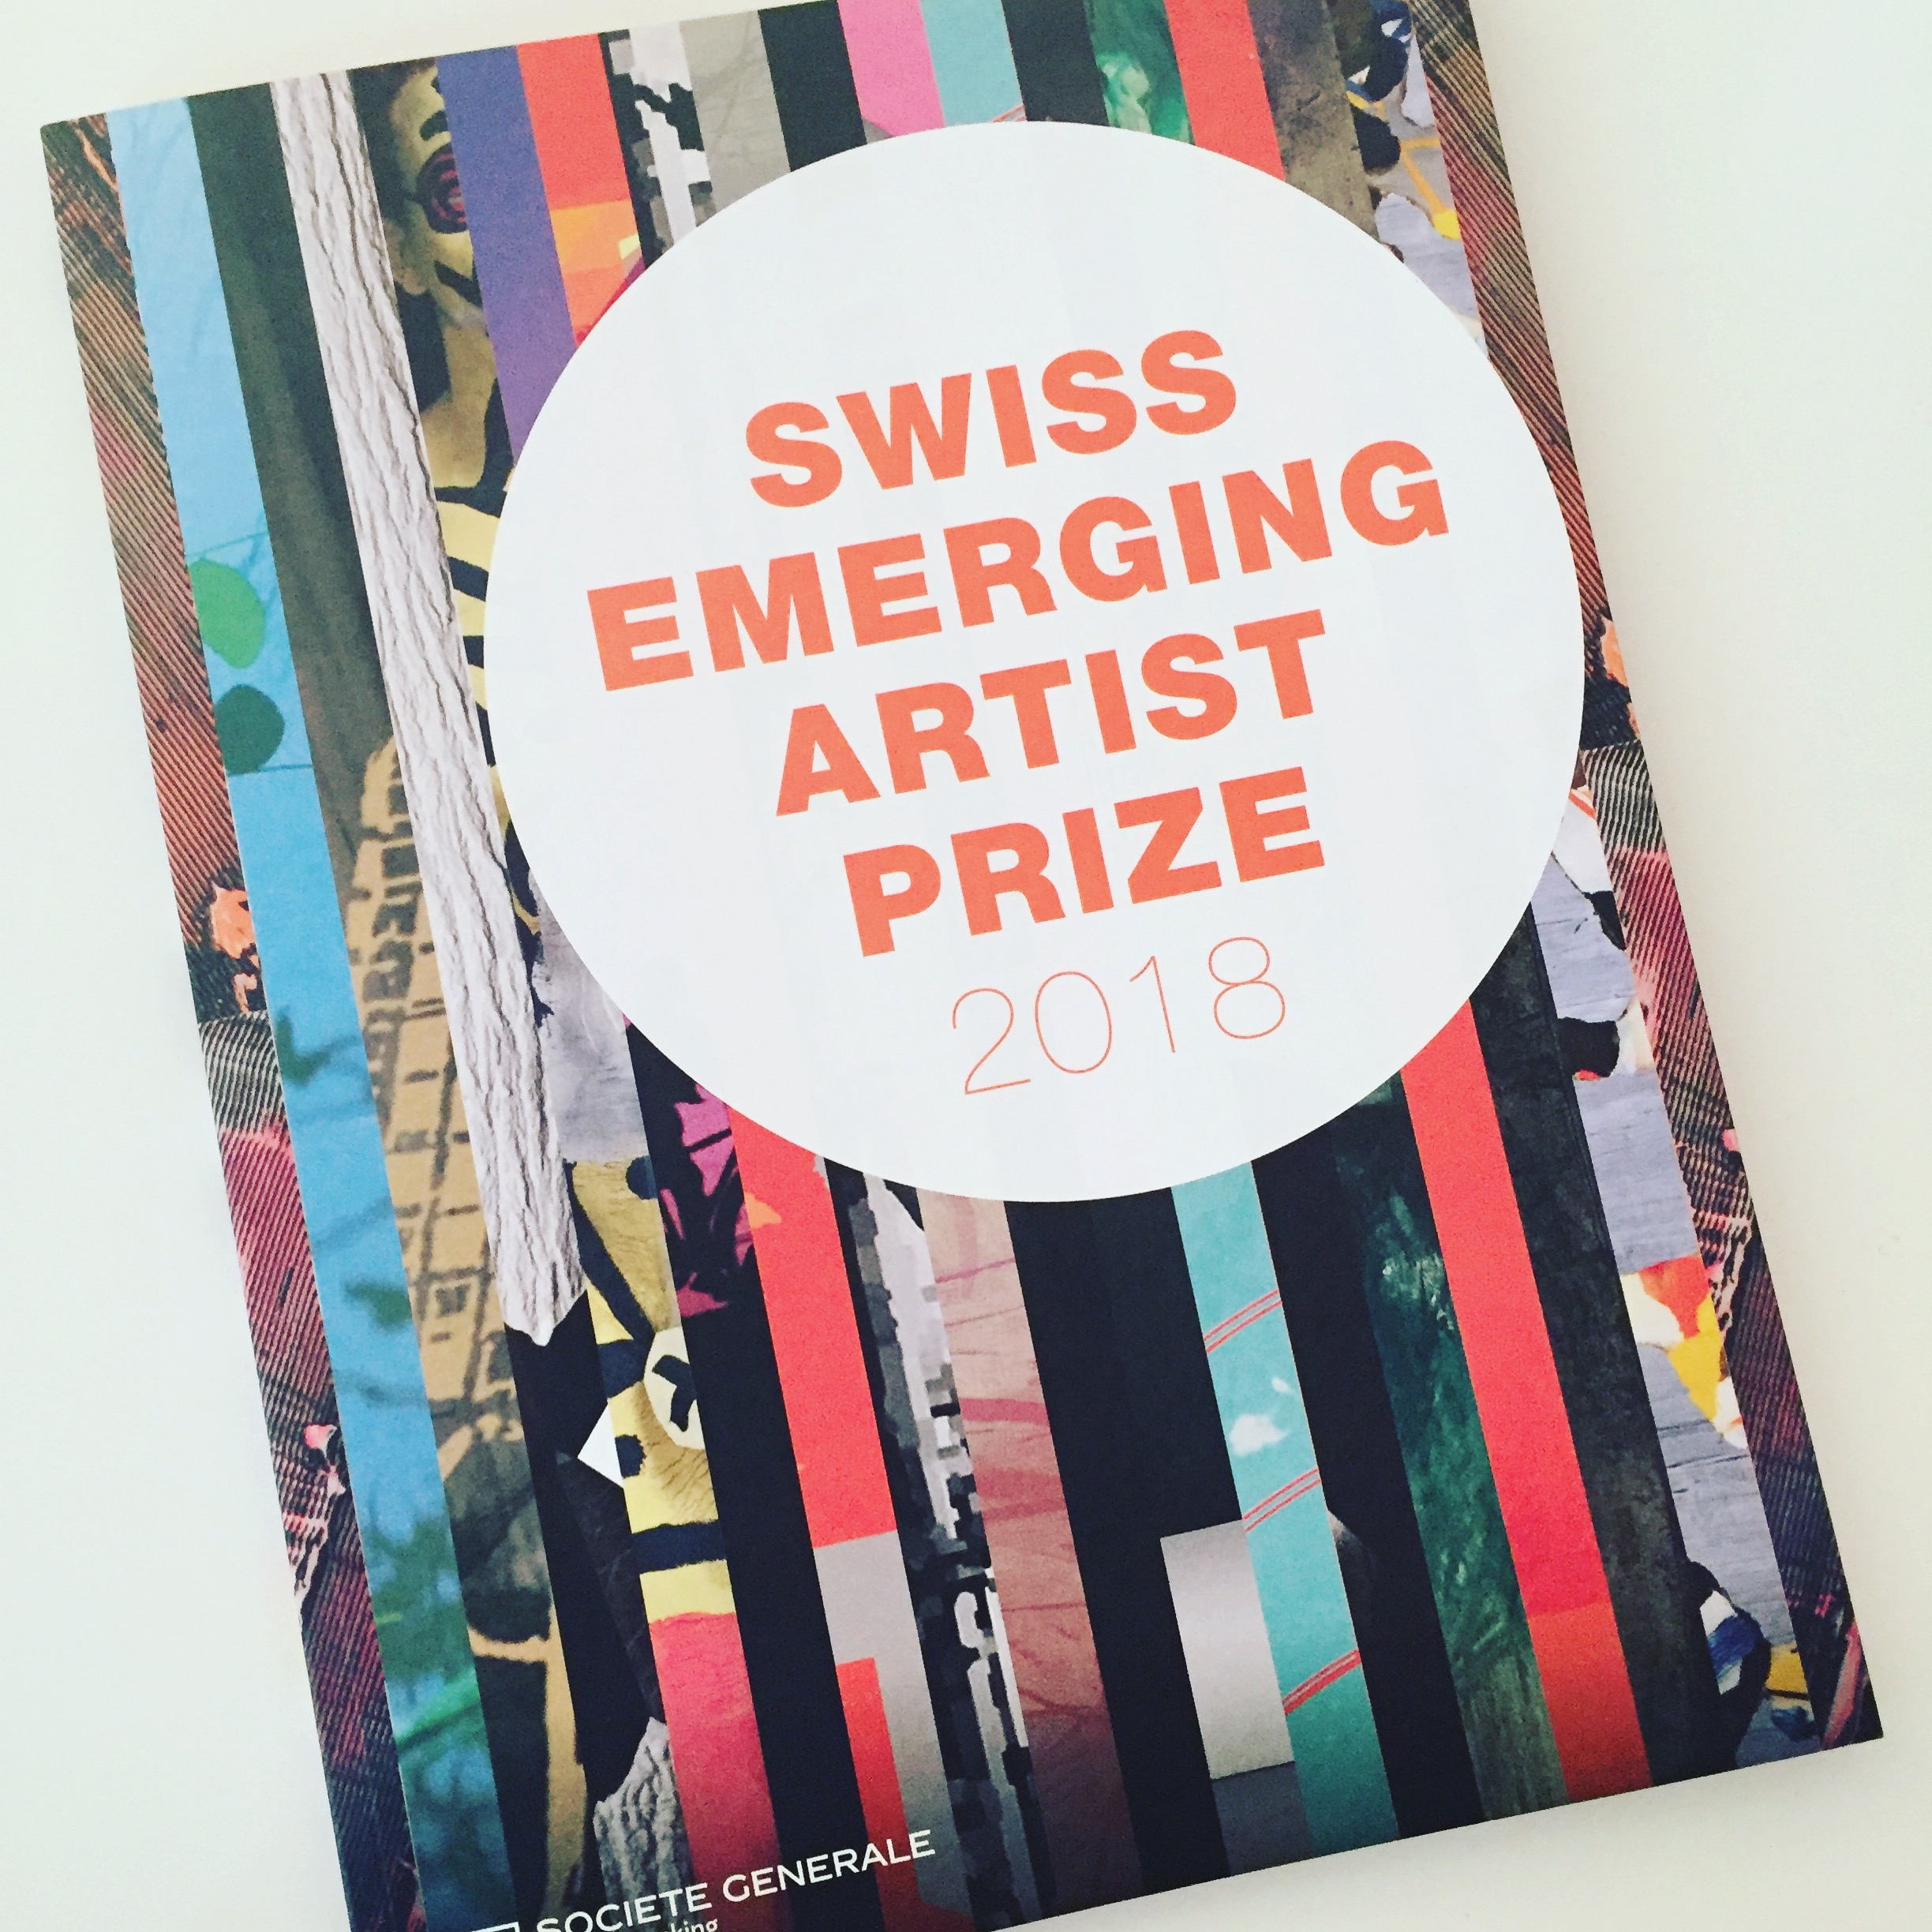 Discover the Swiss Emerging Artist Prize - Click here